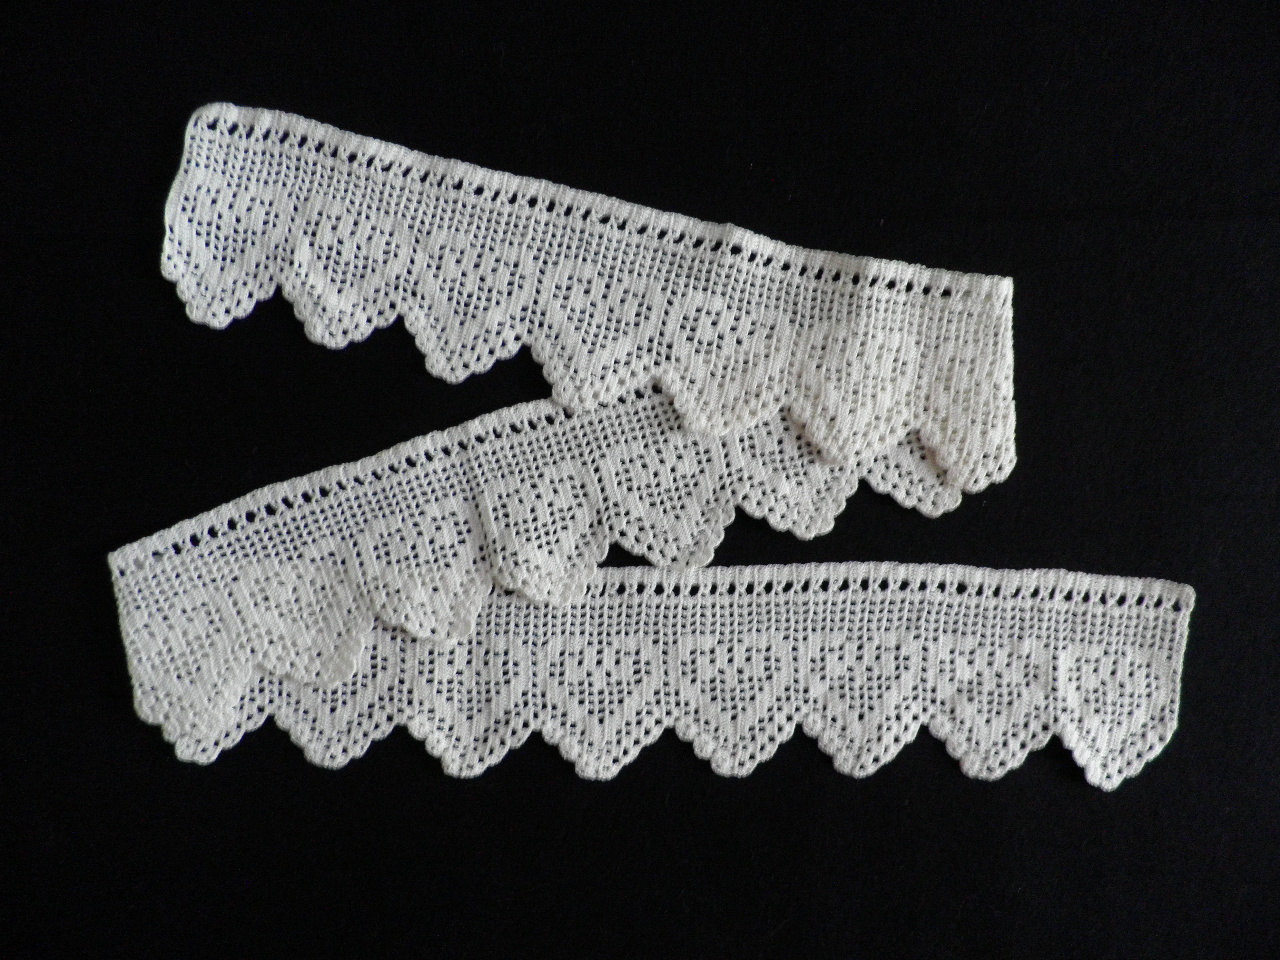 New Crocheted Lace Edging Vintage White Heart Pattern Crochet Lace Edging Pattern Of Amazing 40 Photos Crochet Lace Edging Pattern